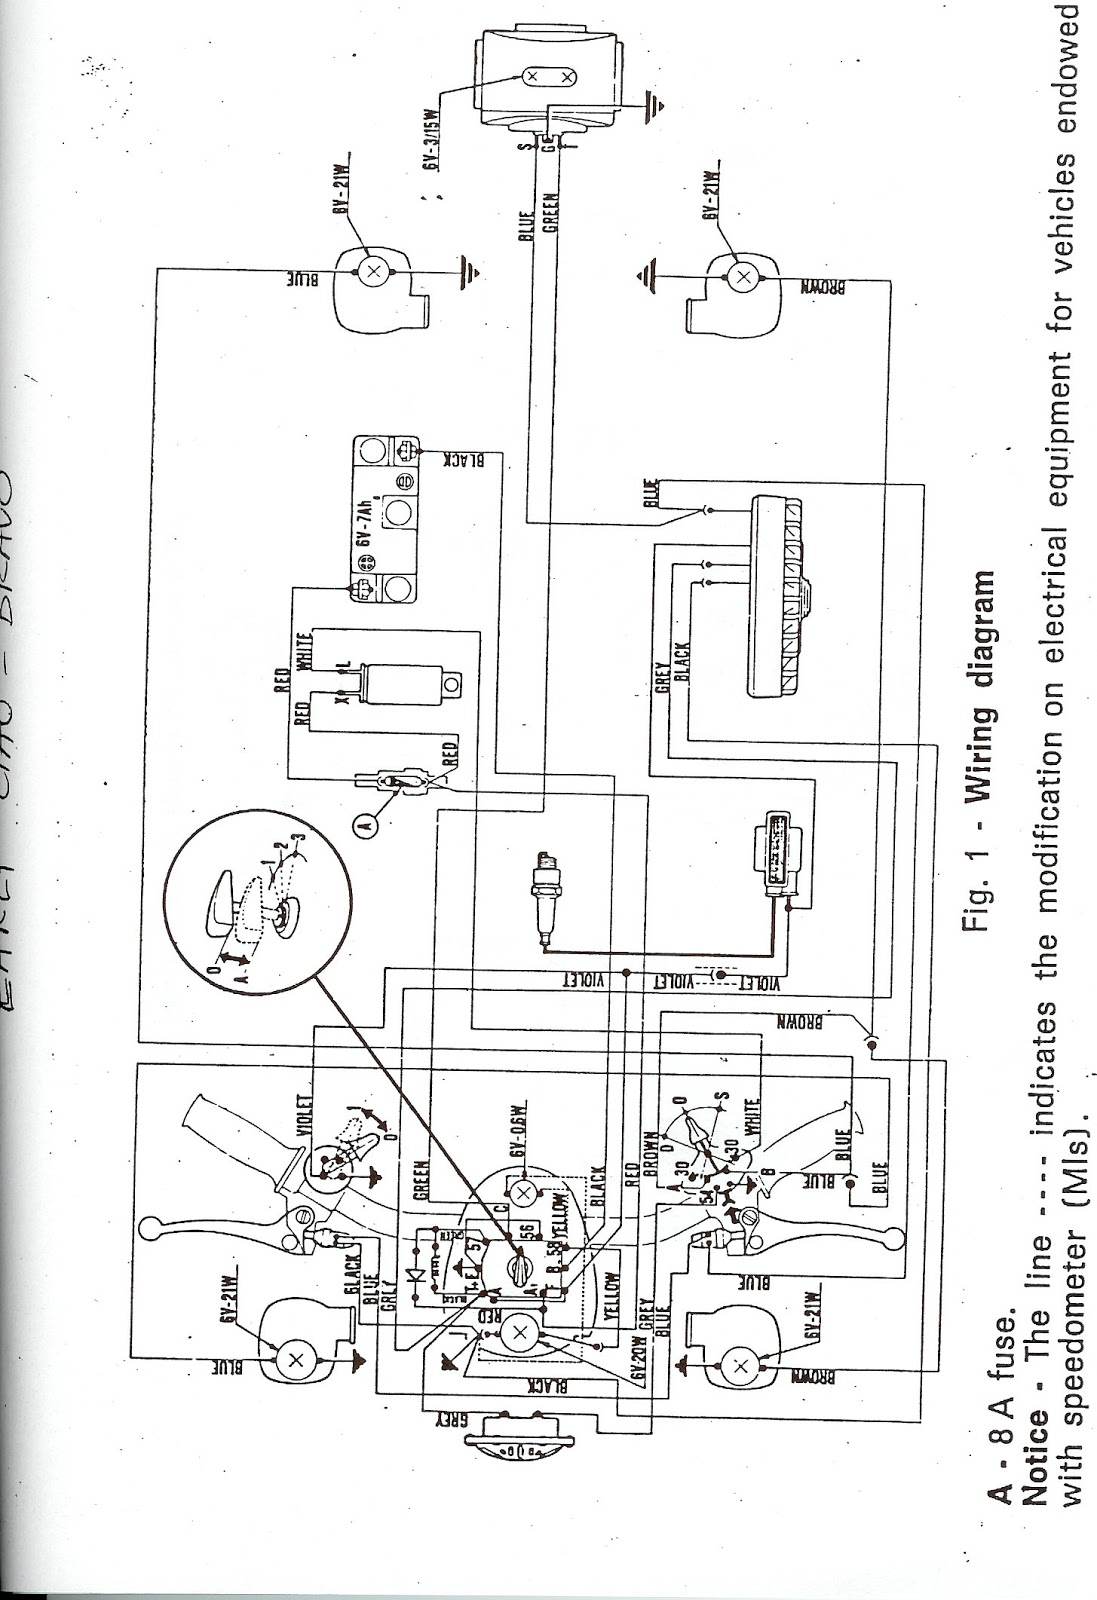 deadped vespa wiring in a nutshell rh deadped blogspot com Vespa GT200 Ignition Wiring-Diagram Vespatronic Wiring-Diagram